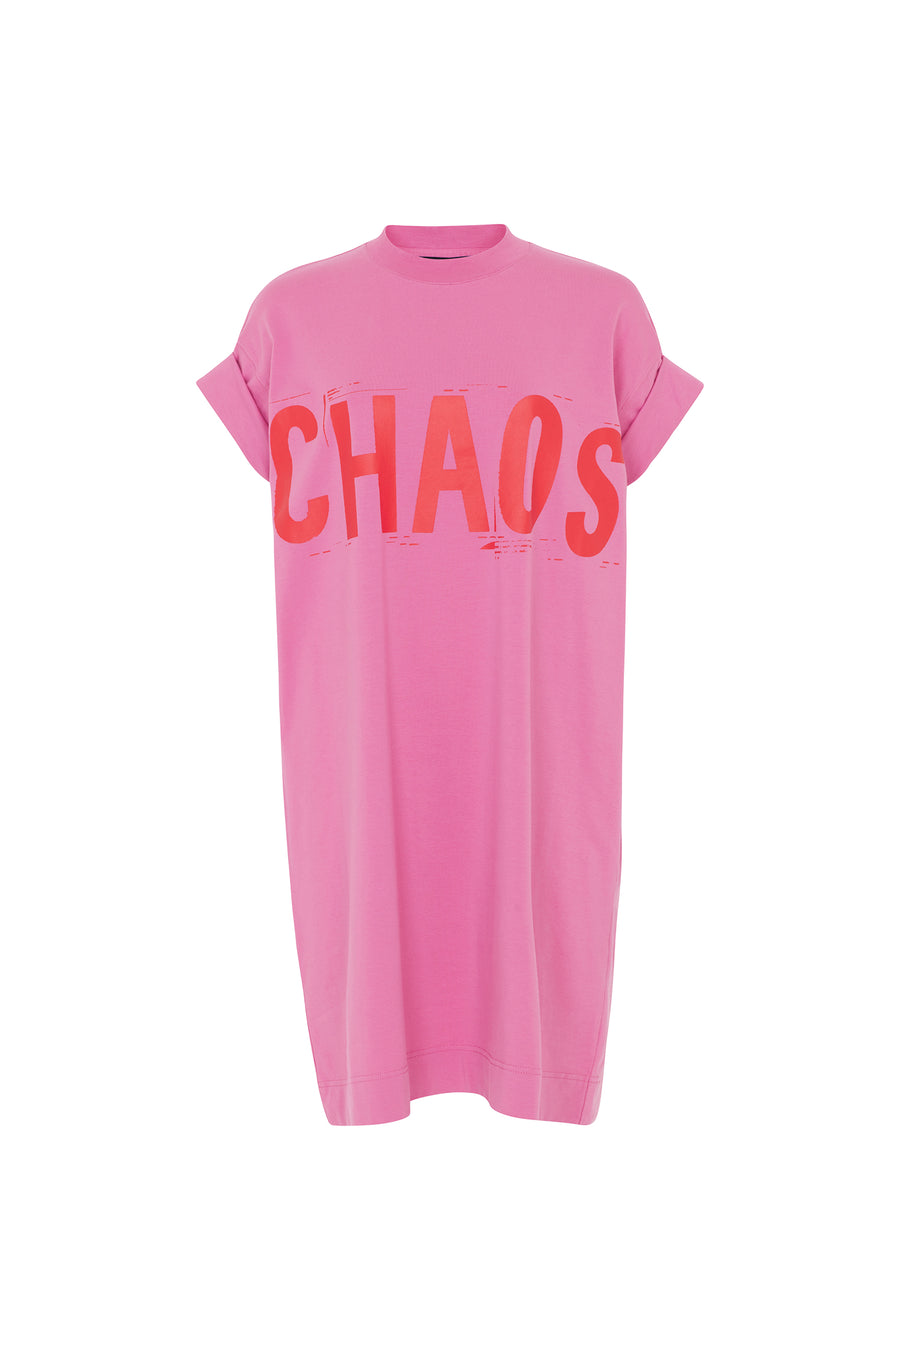 'CHAOS' Oversized T-shirt Dress